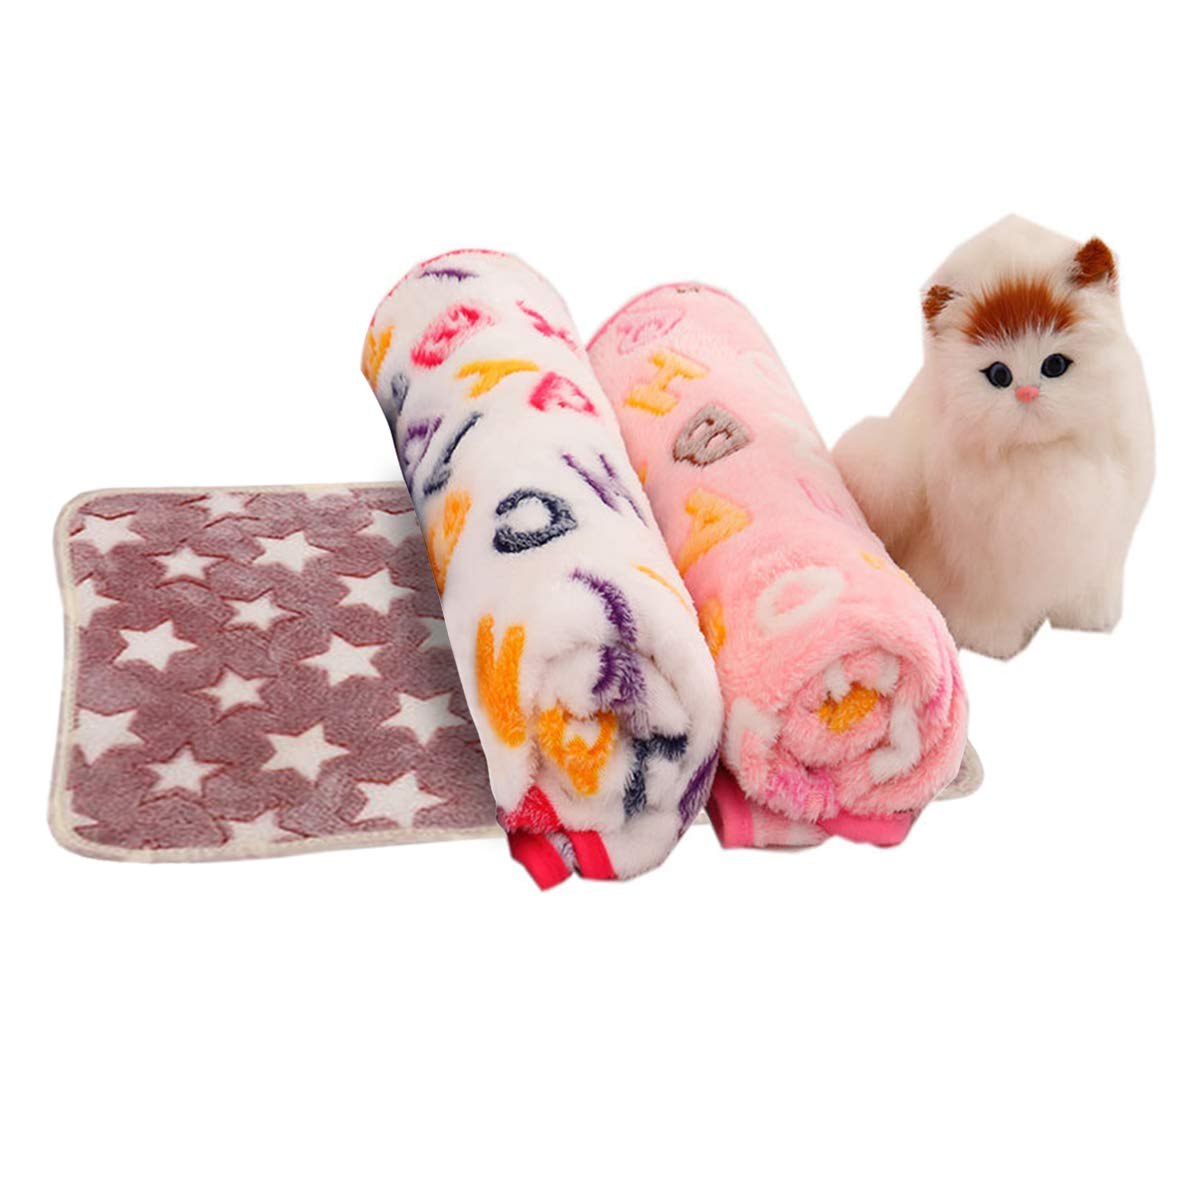 Pack3 Medium(29.920.9\ Pack3 Medium(29.920.9\ Adorrable Soft and Fluffy Pet Blanket Warm Cute Dog Cat Fleece Throw Blankets with Star Letter Prints Pack of 3, Pack3, 29.9 20.9 ,